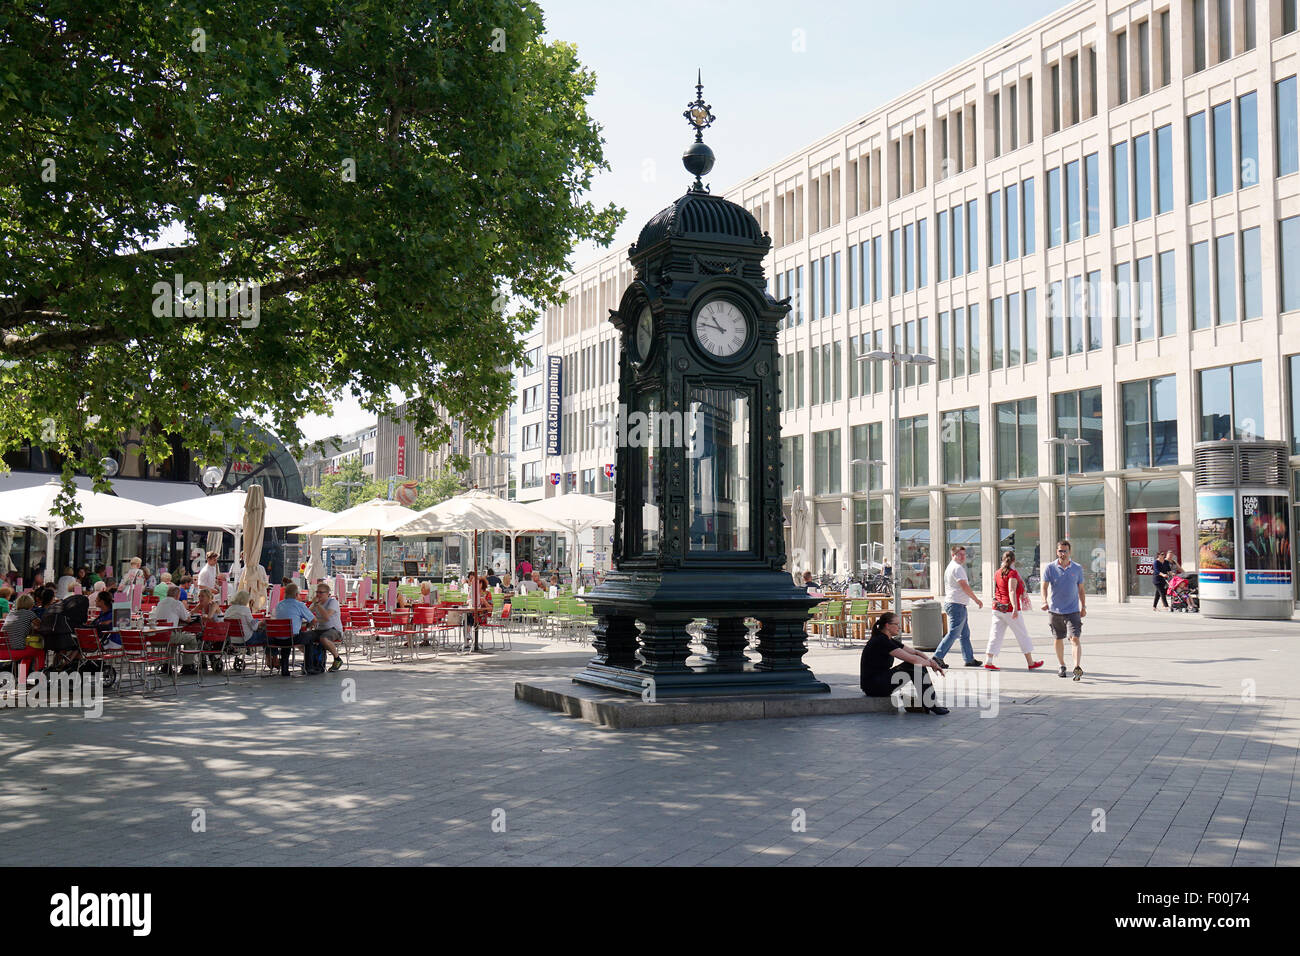 hannover germany august 2015 the historic kroepcke clock is a stock photo royalty free. Black Bedroom Furniture Sets. Home Design Ideas